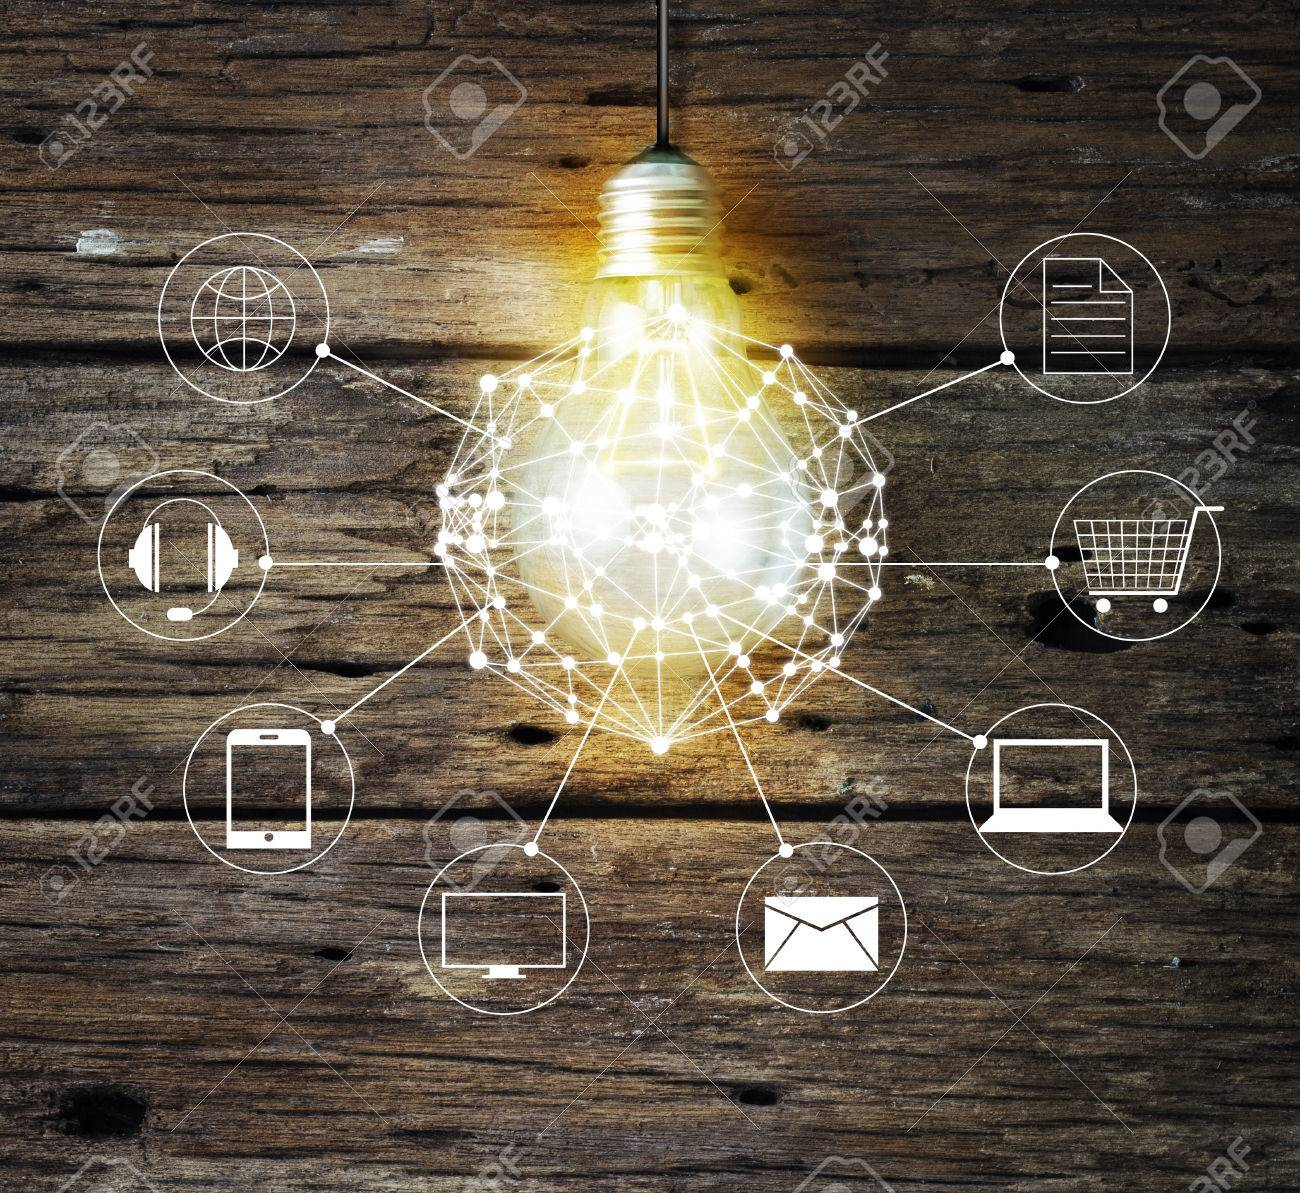 Light bulb circle global and icon customer network connection on wooden background, Omni Channel or Multi channel - 60007103